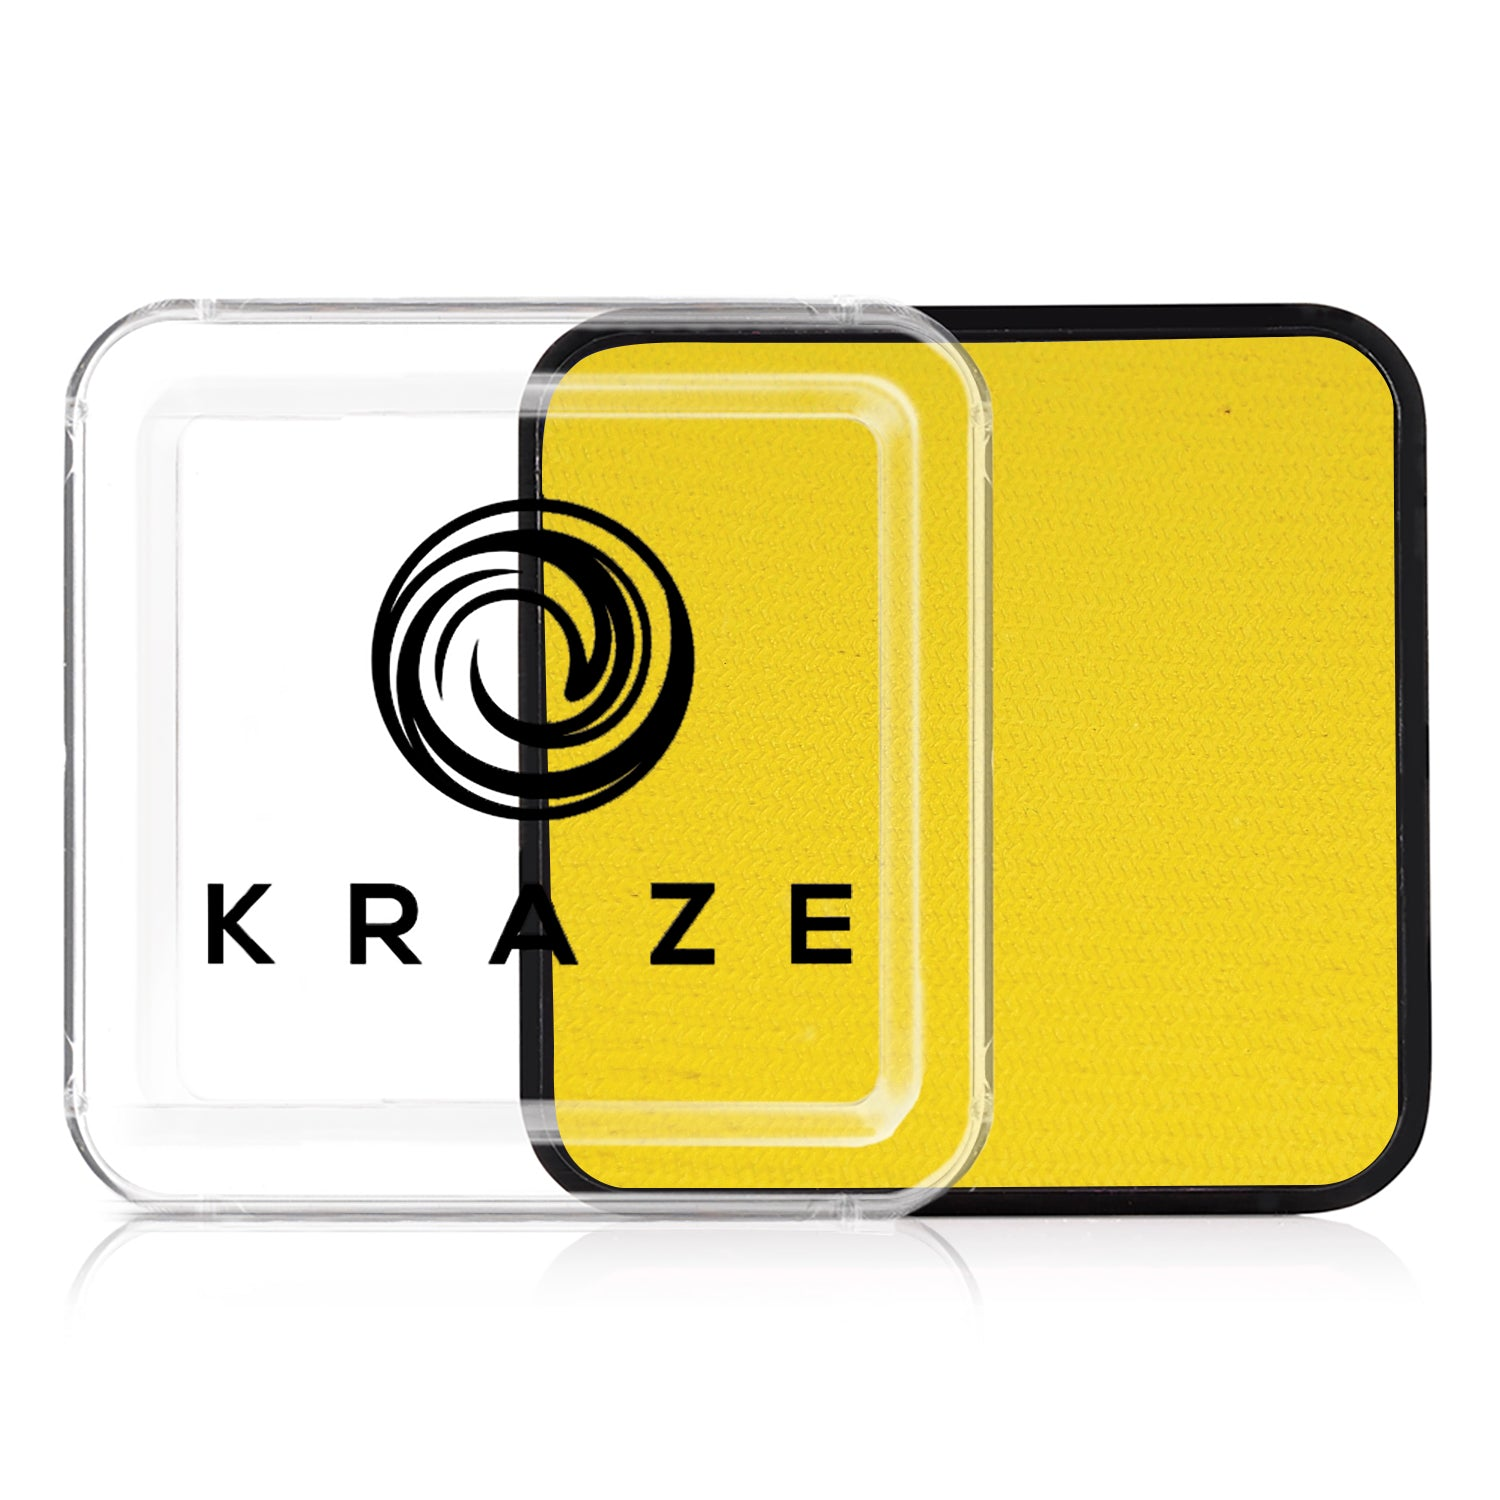 Kraze Square - Light Yellow (25 gm)